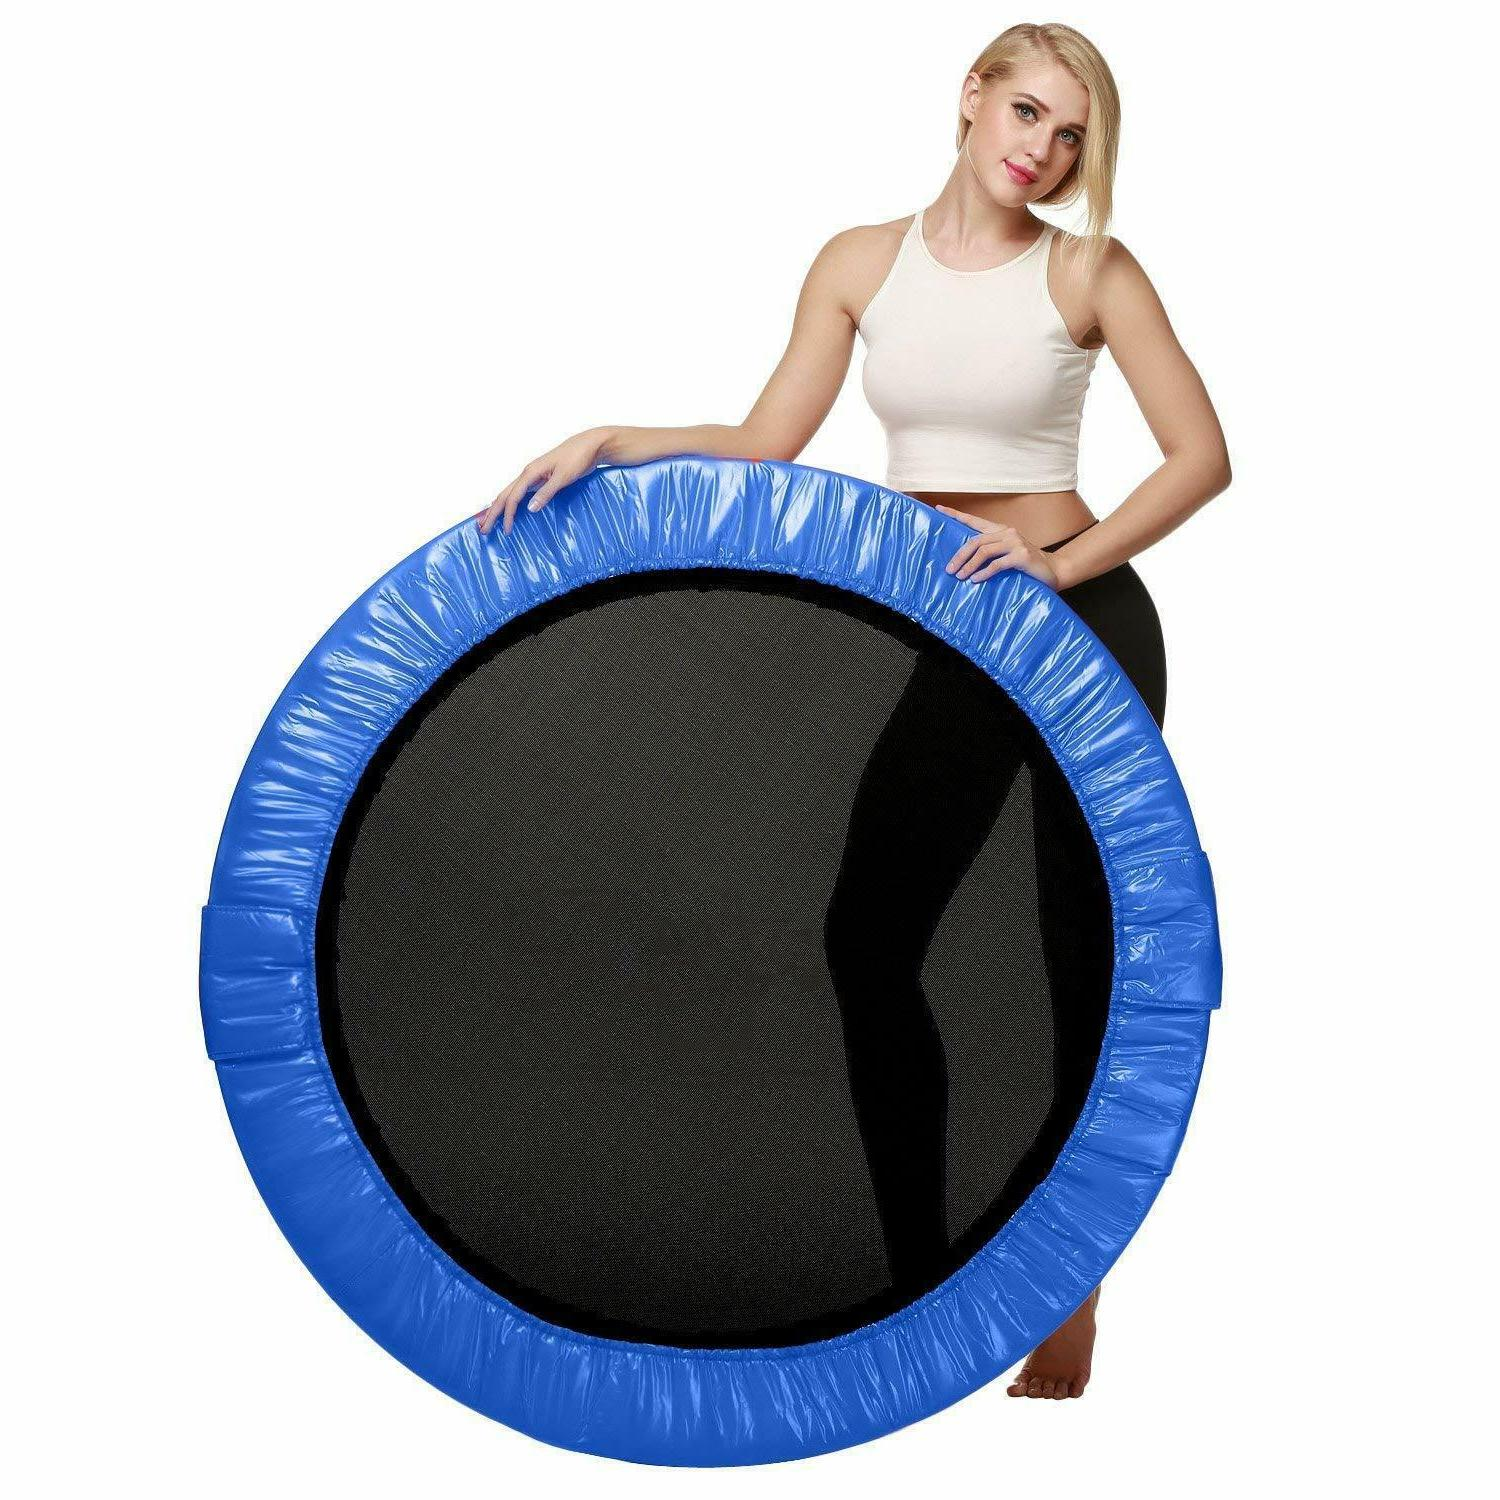 Ancheer 38Inch Trampoline Fitness Load 220LBS